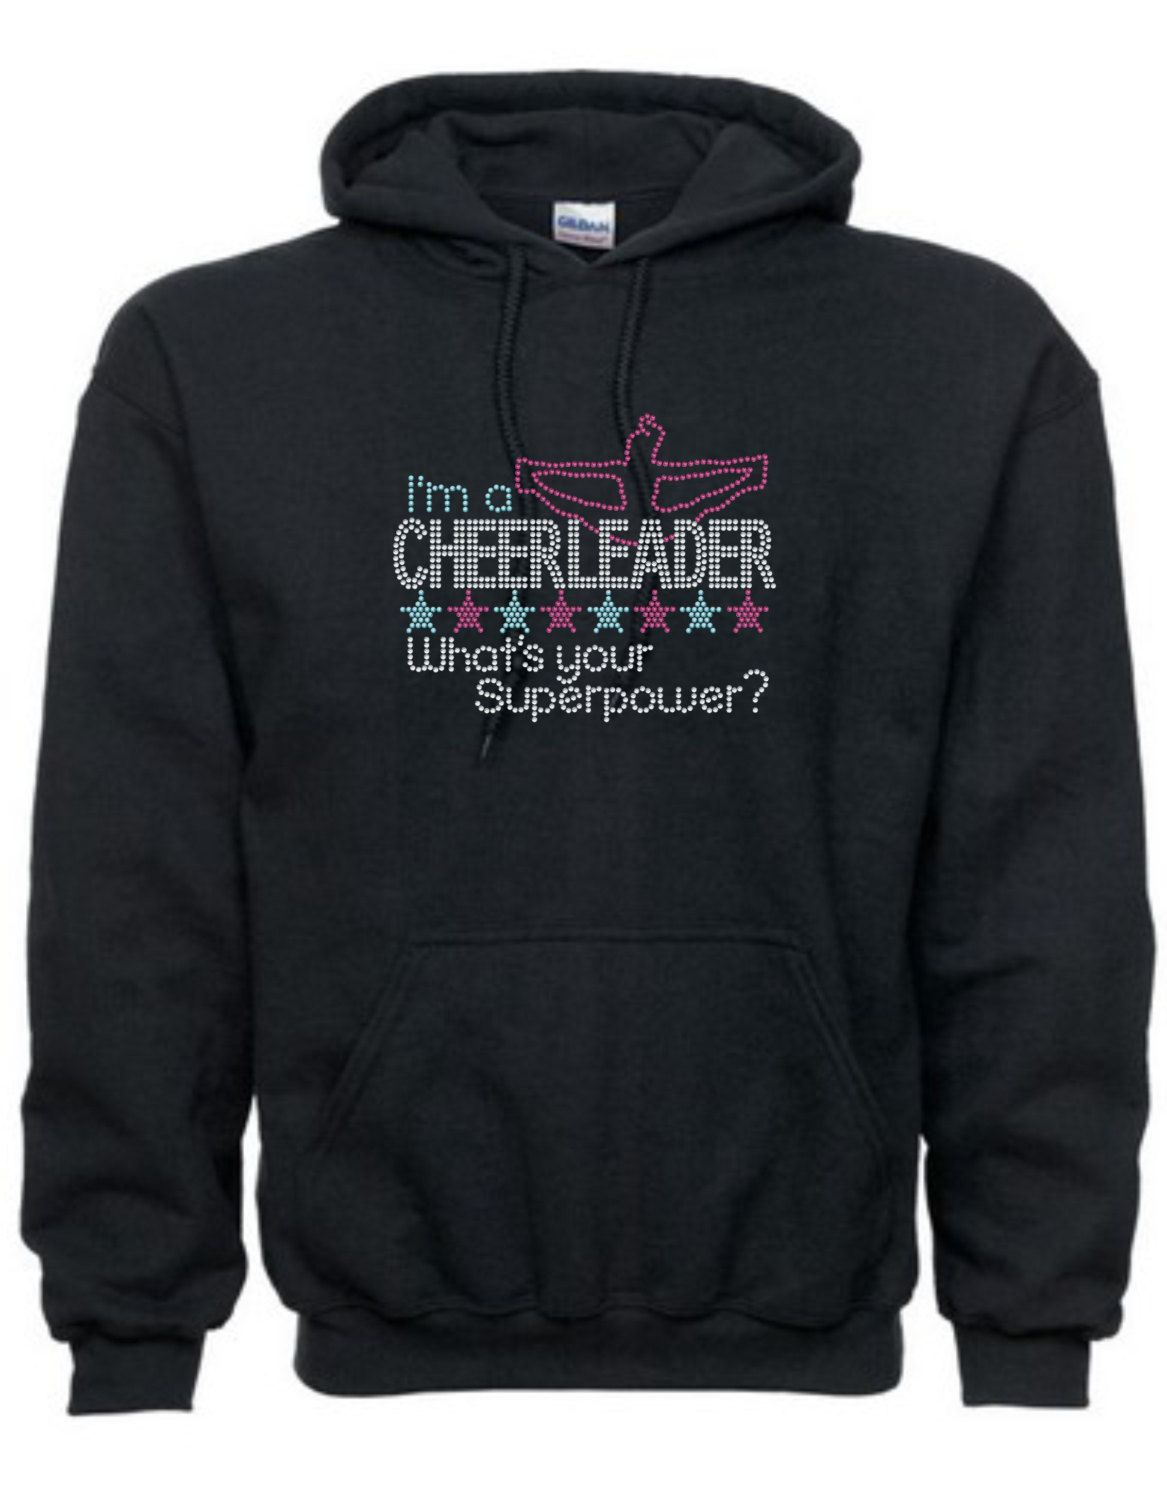 Rhinestone I'm A Cheerleader What's Your Superpower? With Cheer Flyer Cheerleading Cheer Hoodie Sweatshirt Many Colors by teamasportsbling on Etsy https://www.etsy.com/listing/160680081/rhinestone-im-a-cheerleader-whats-your